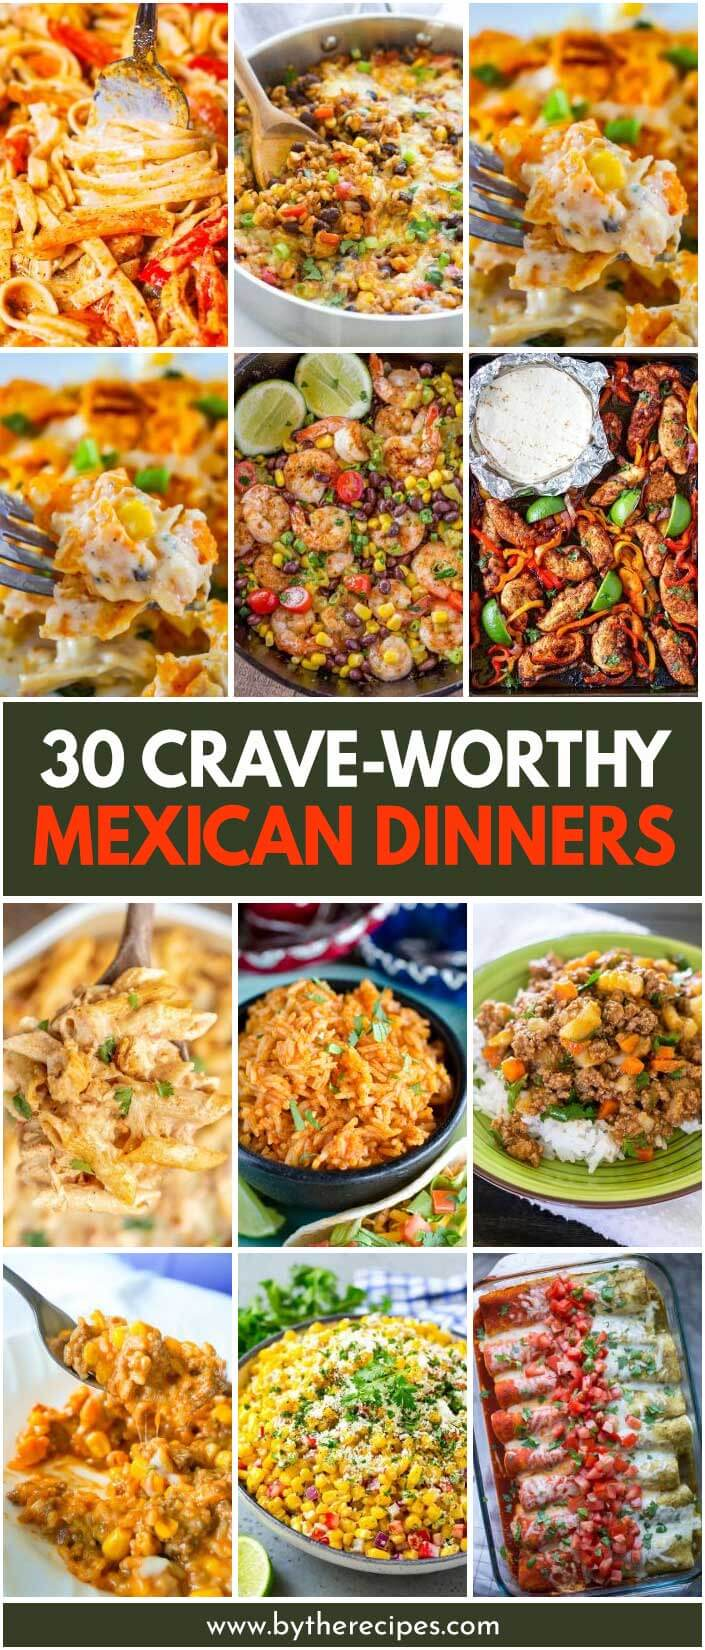 30 Crave-Worthy Mexican Dinners